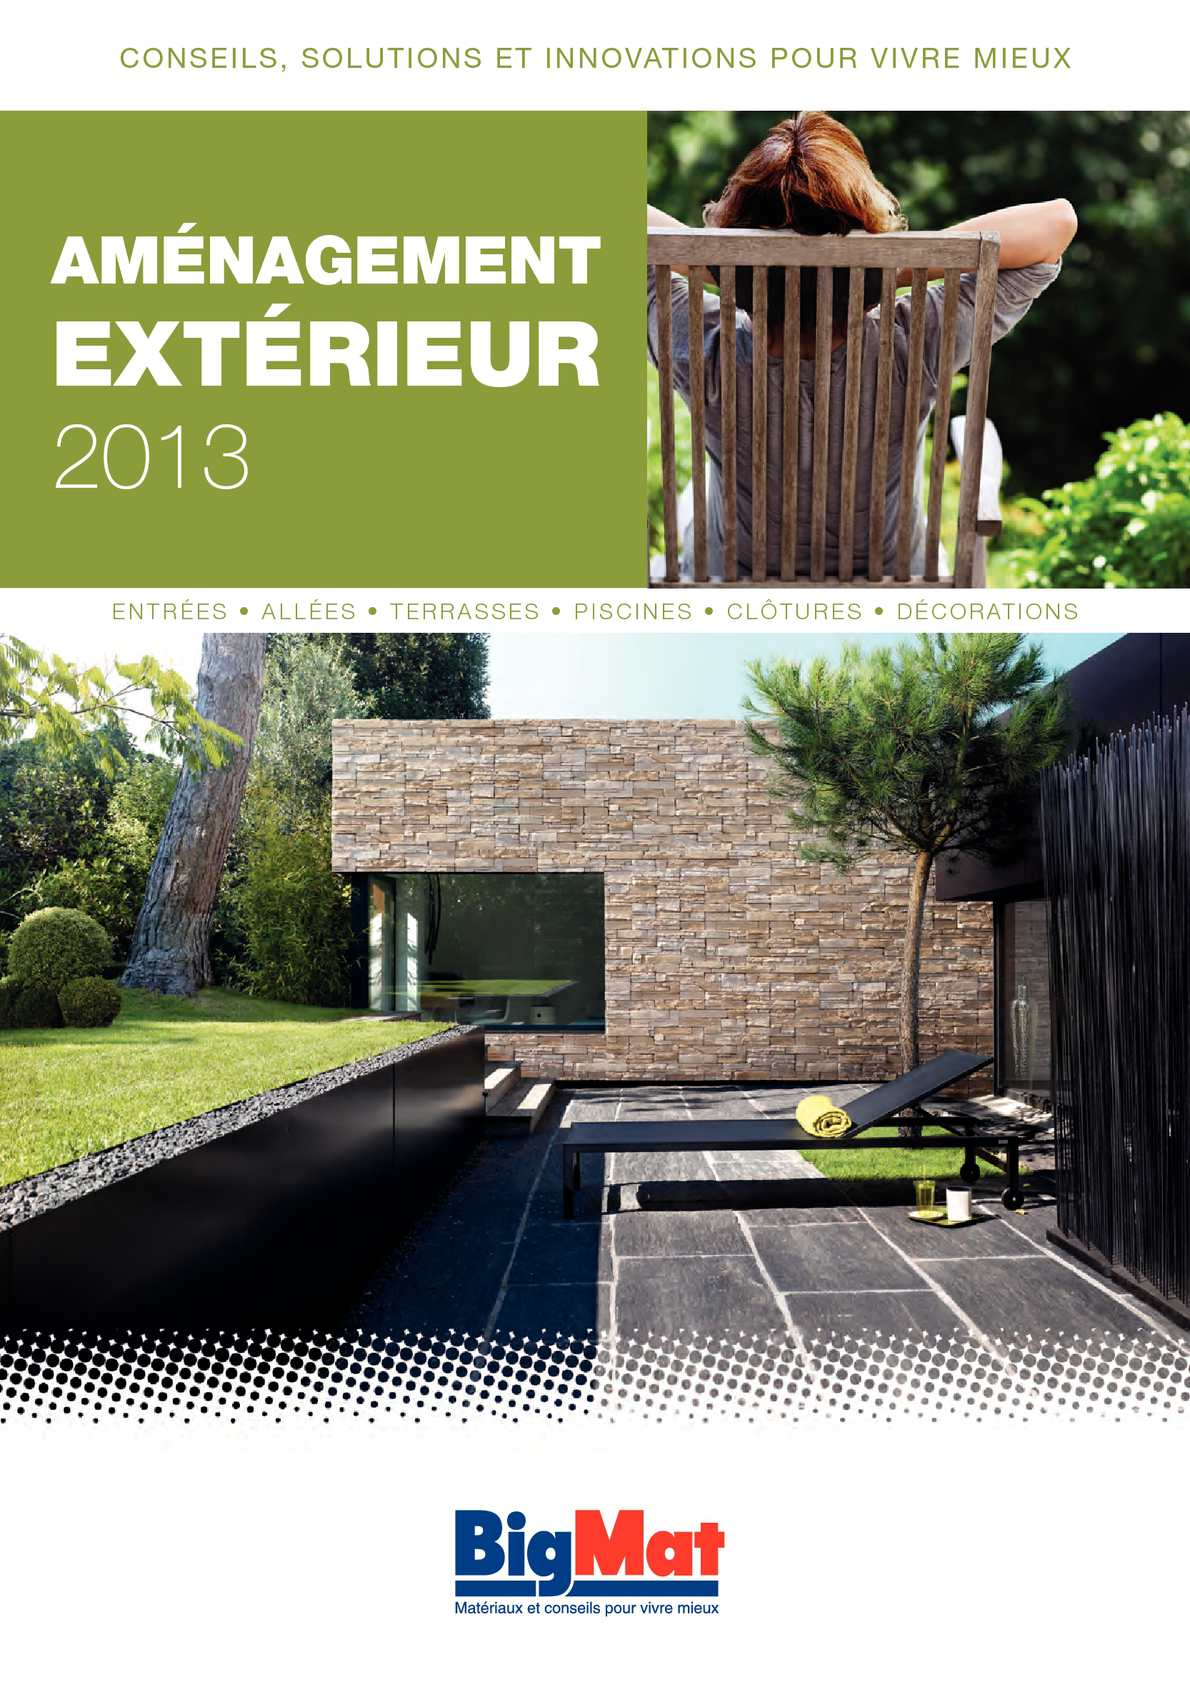 Amenagement Exterieur Def Calaméo Catalogue Bigmat Amenagement Exterieur 2013 Francinor